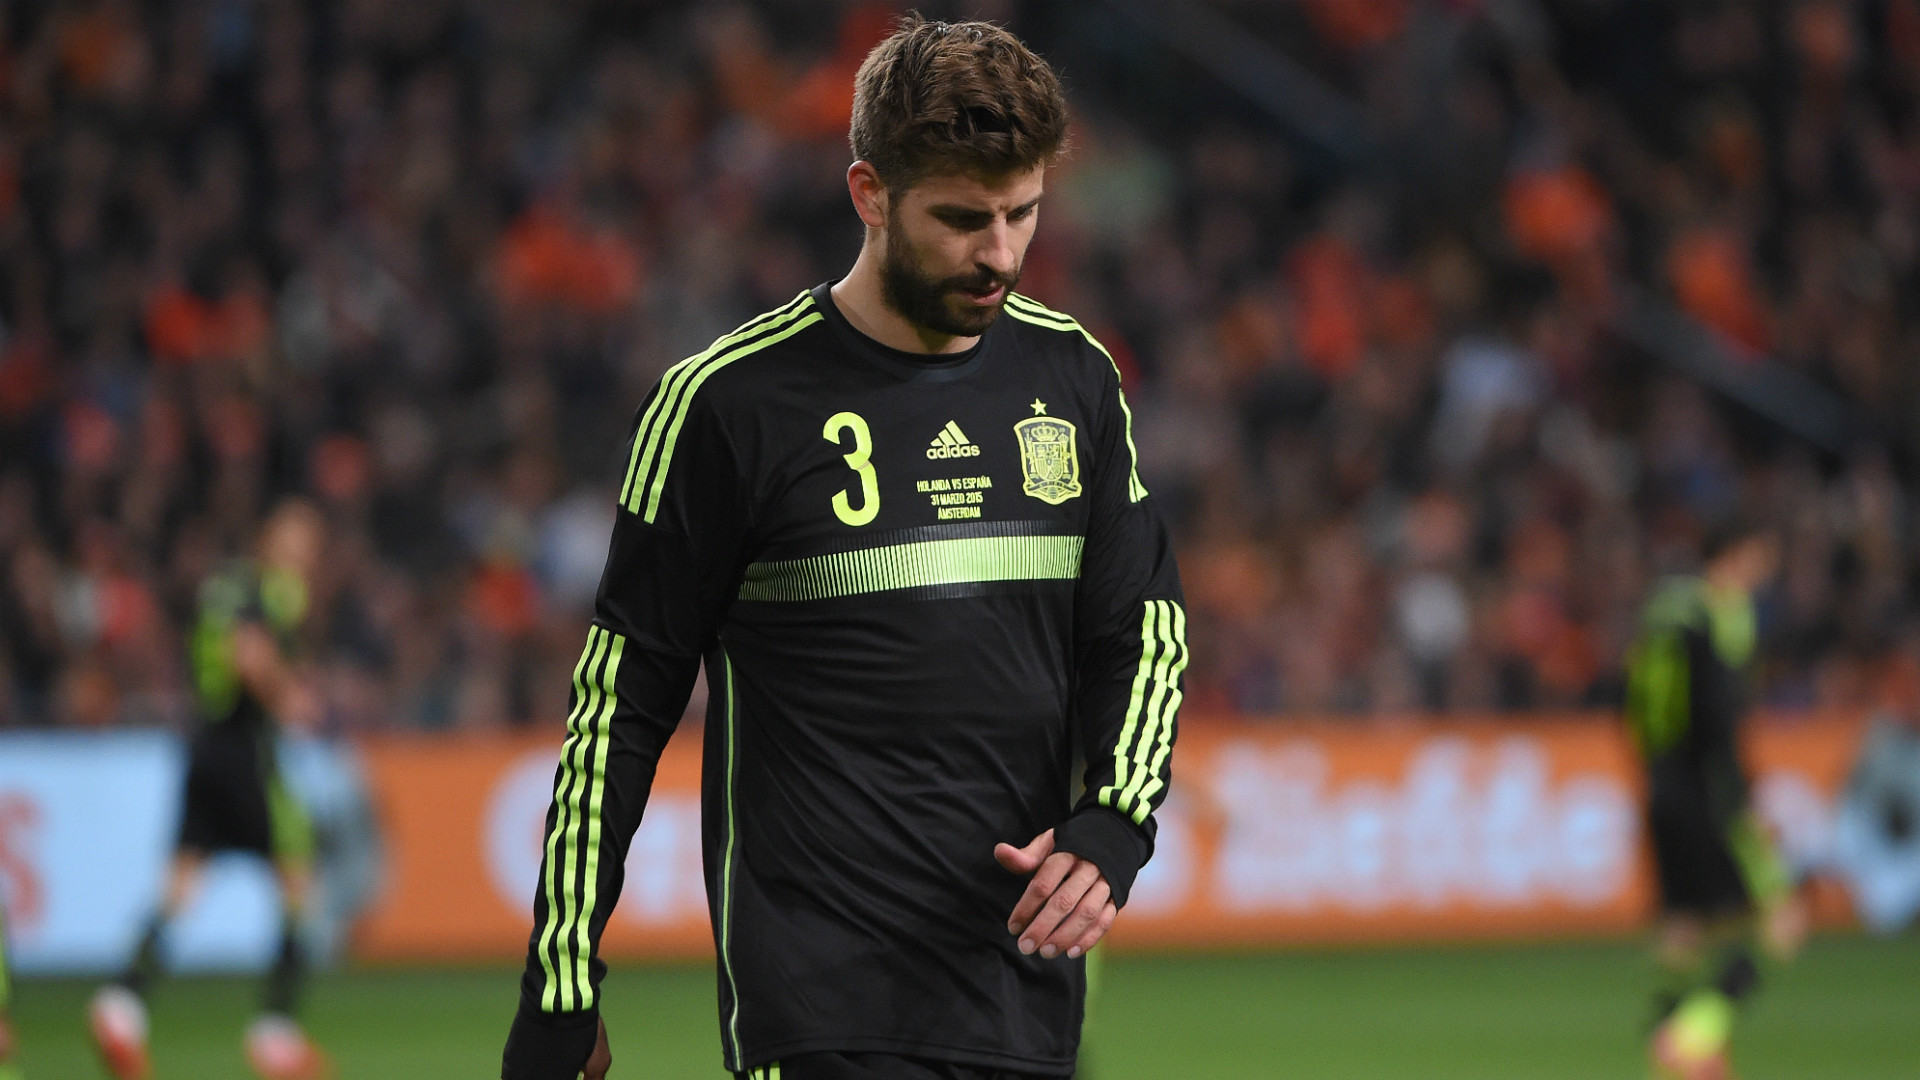 Del Bosque: Pique night out was sanctioned